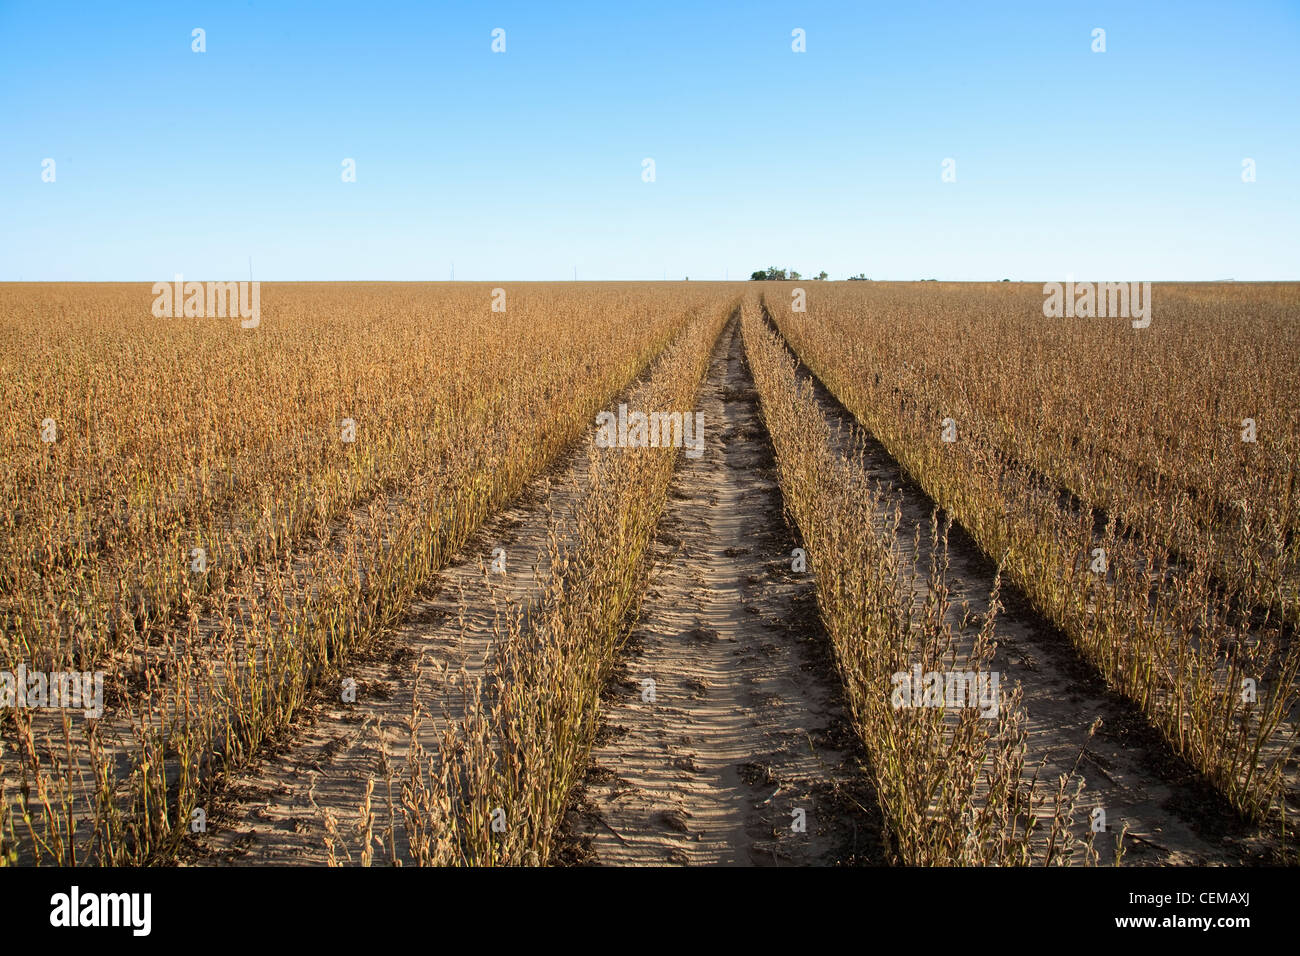 Agriculture - Field of maturing sesame plants nearing harvest stage / West Texas, USA. - Stock Image